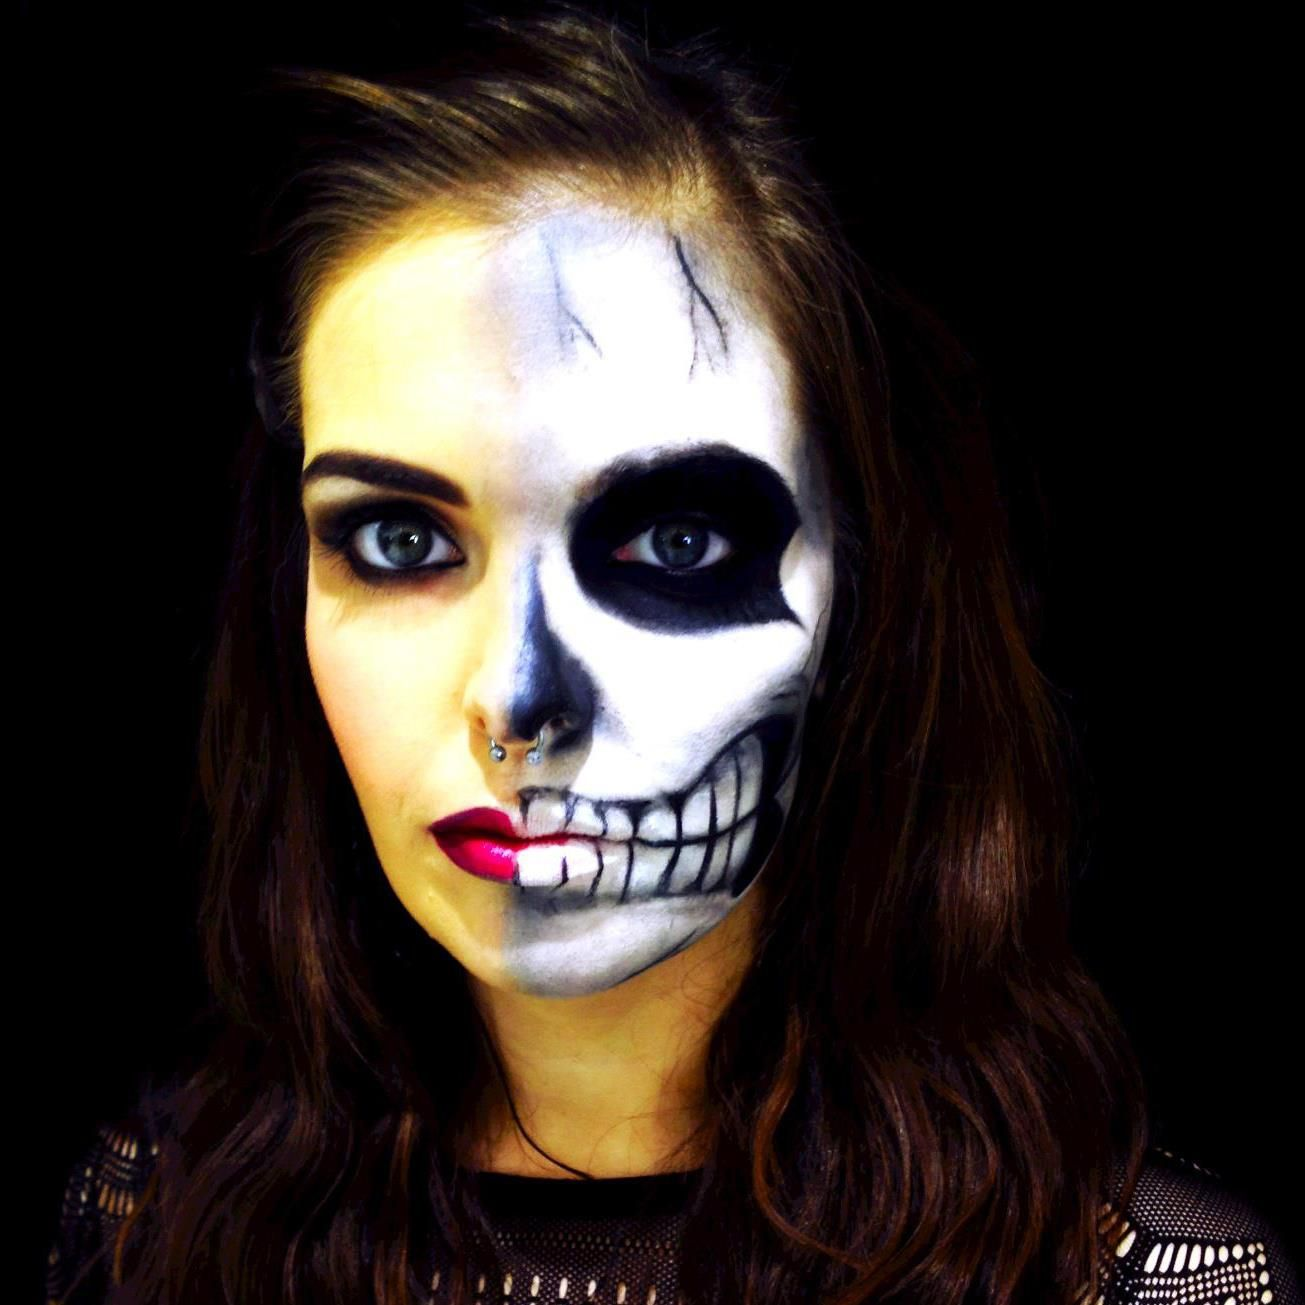 Cool Halloween Yard Decorations: 30 SCARY MAKEUP INSPIRATIONS